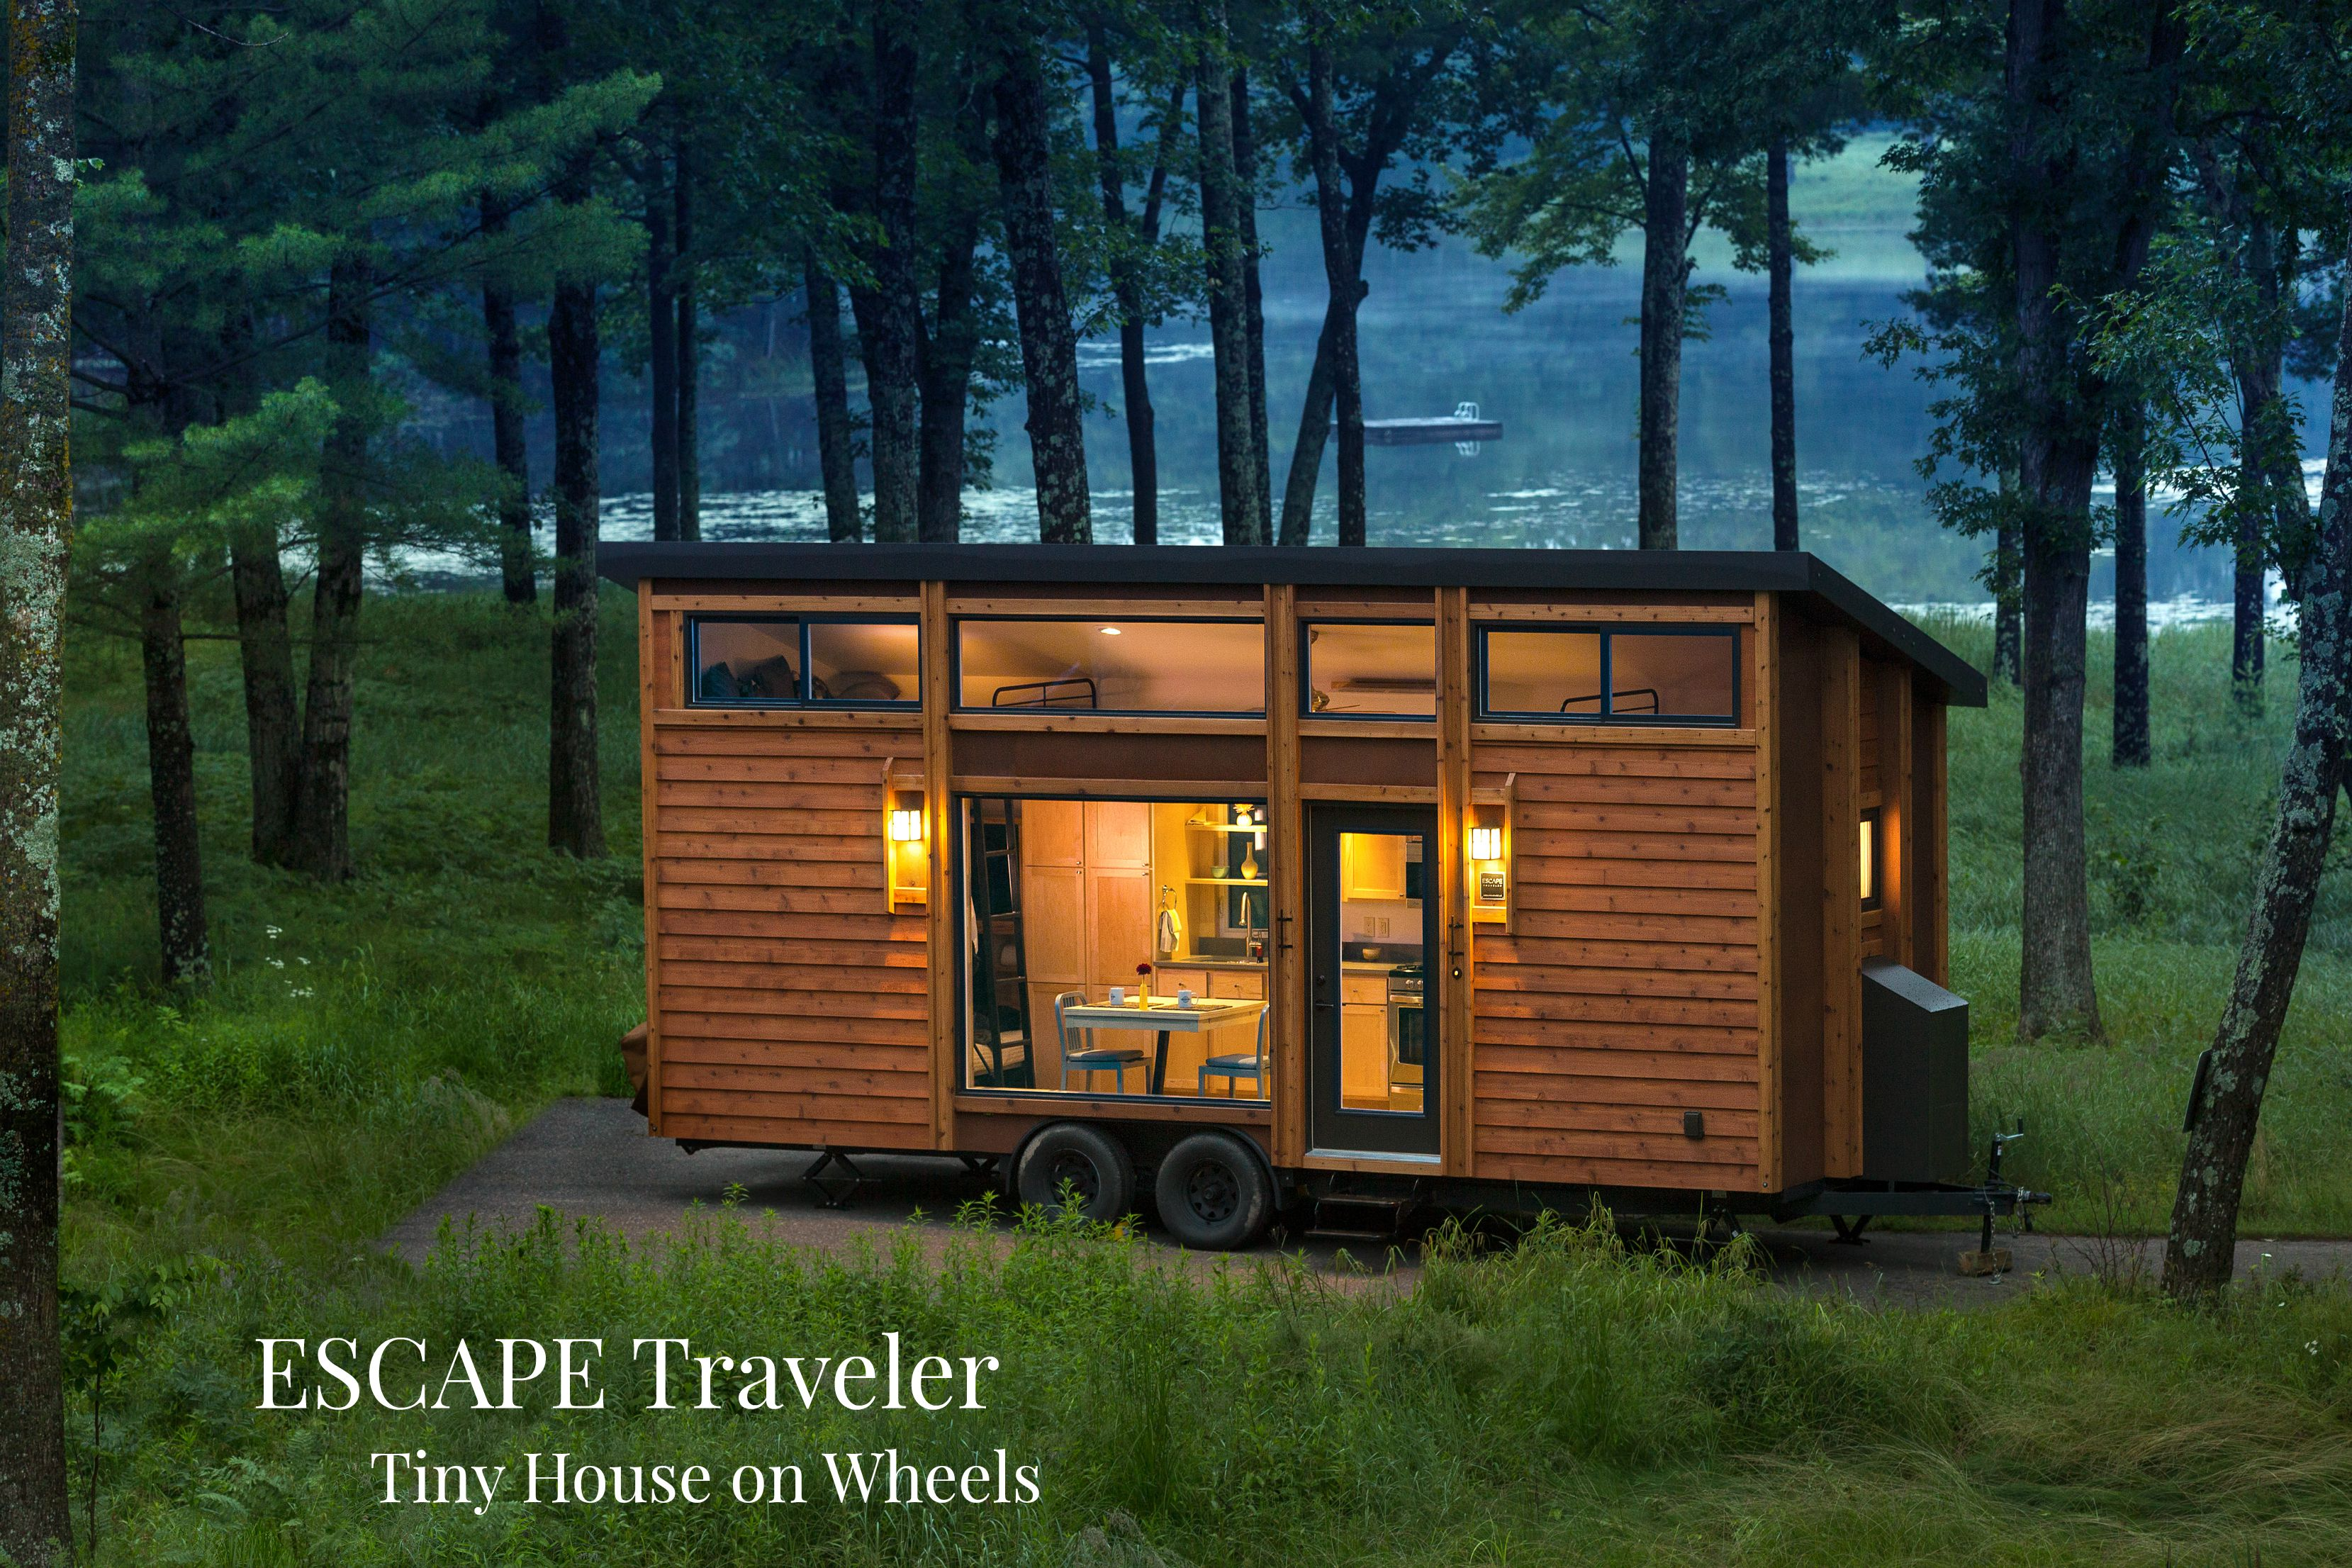 ESCAPE Traveler - Tiny House on Wheels